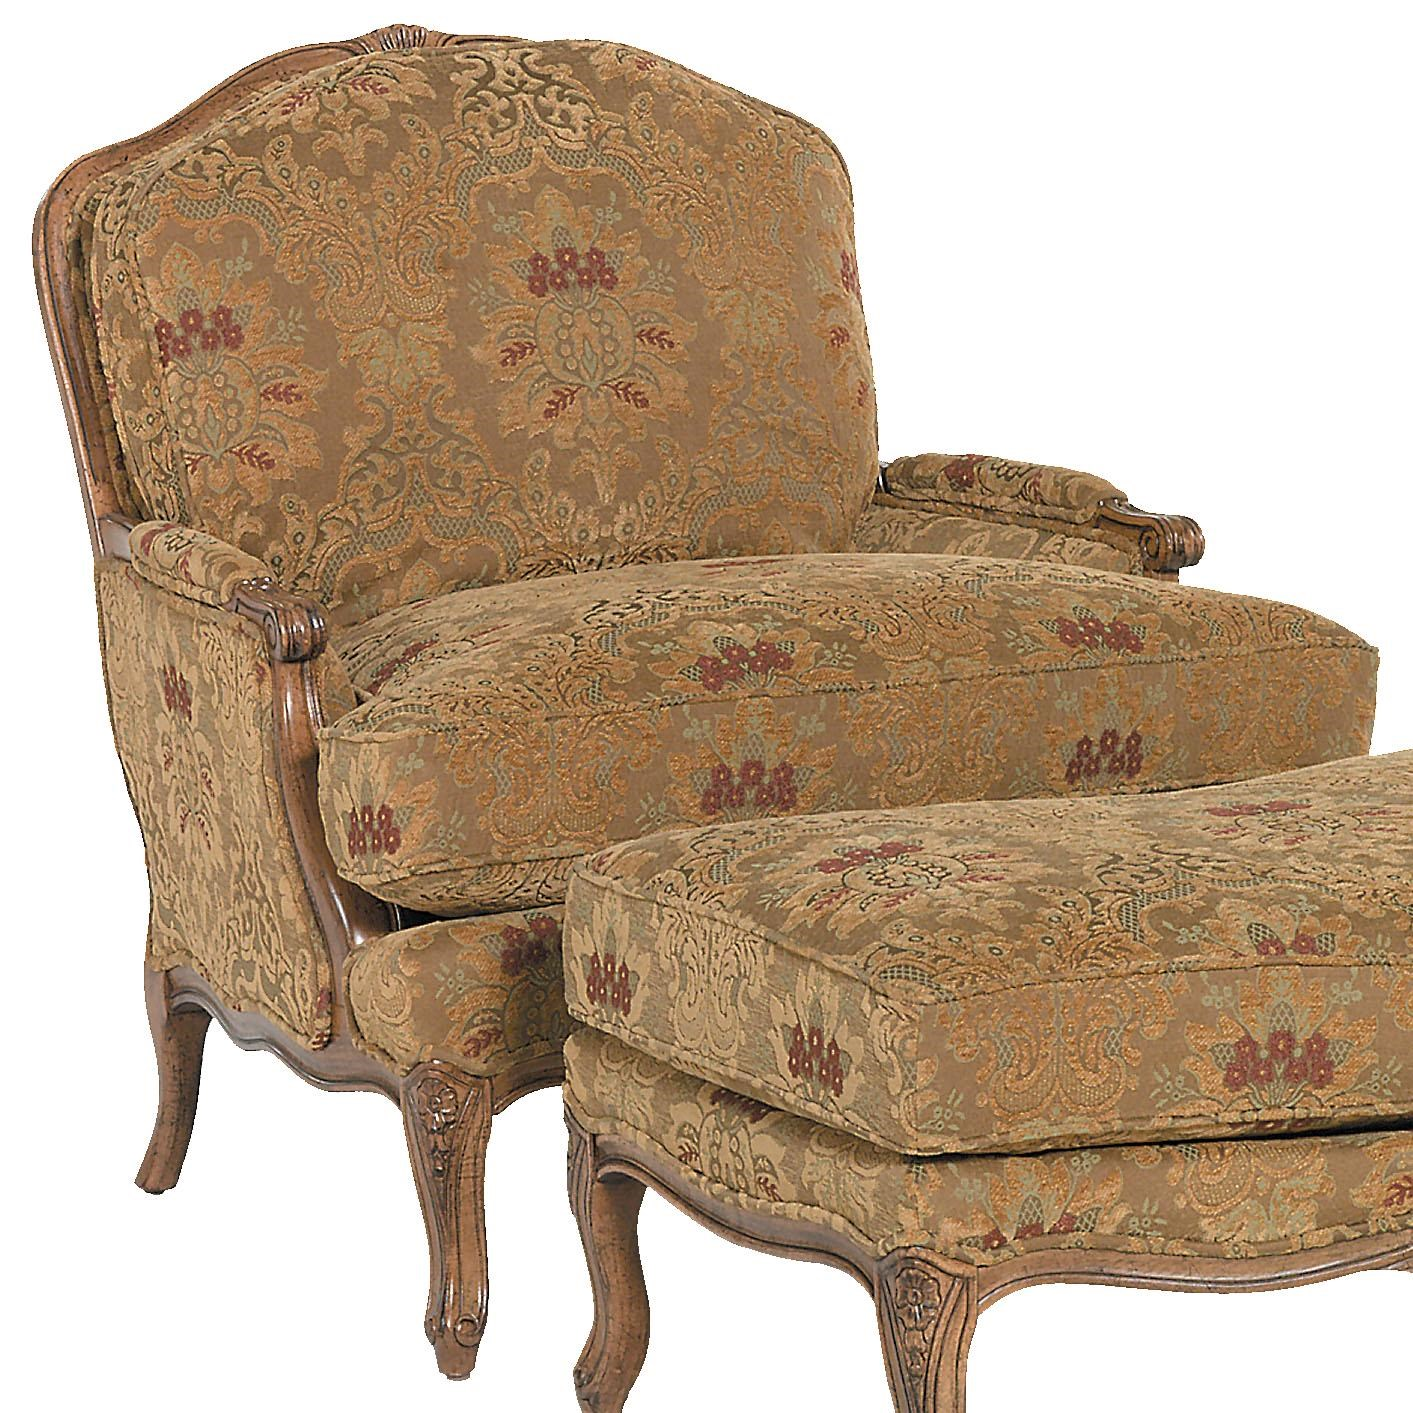 Fairfield Chairs Chairs Traditionally Styled Lounge Chair By Fairfield At Lindy S Furniture Company